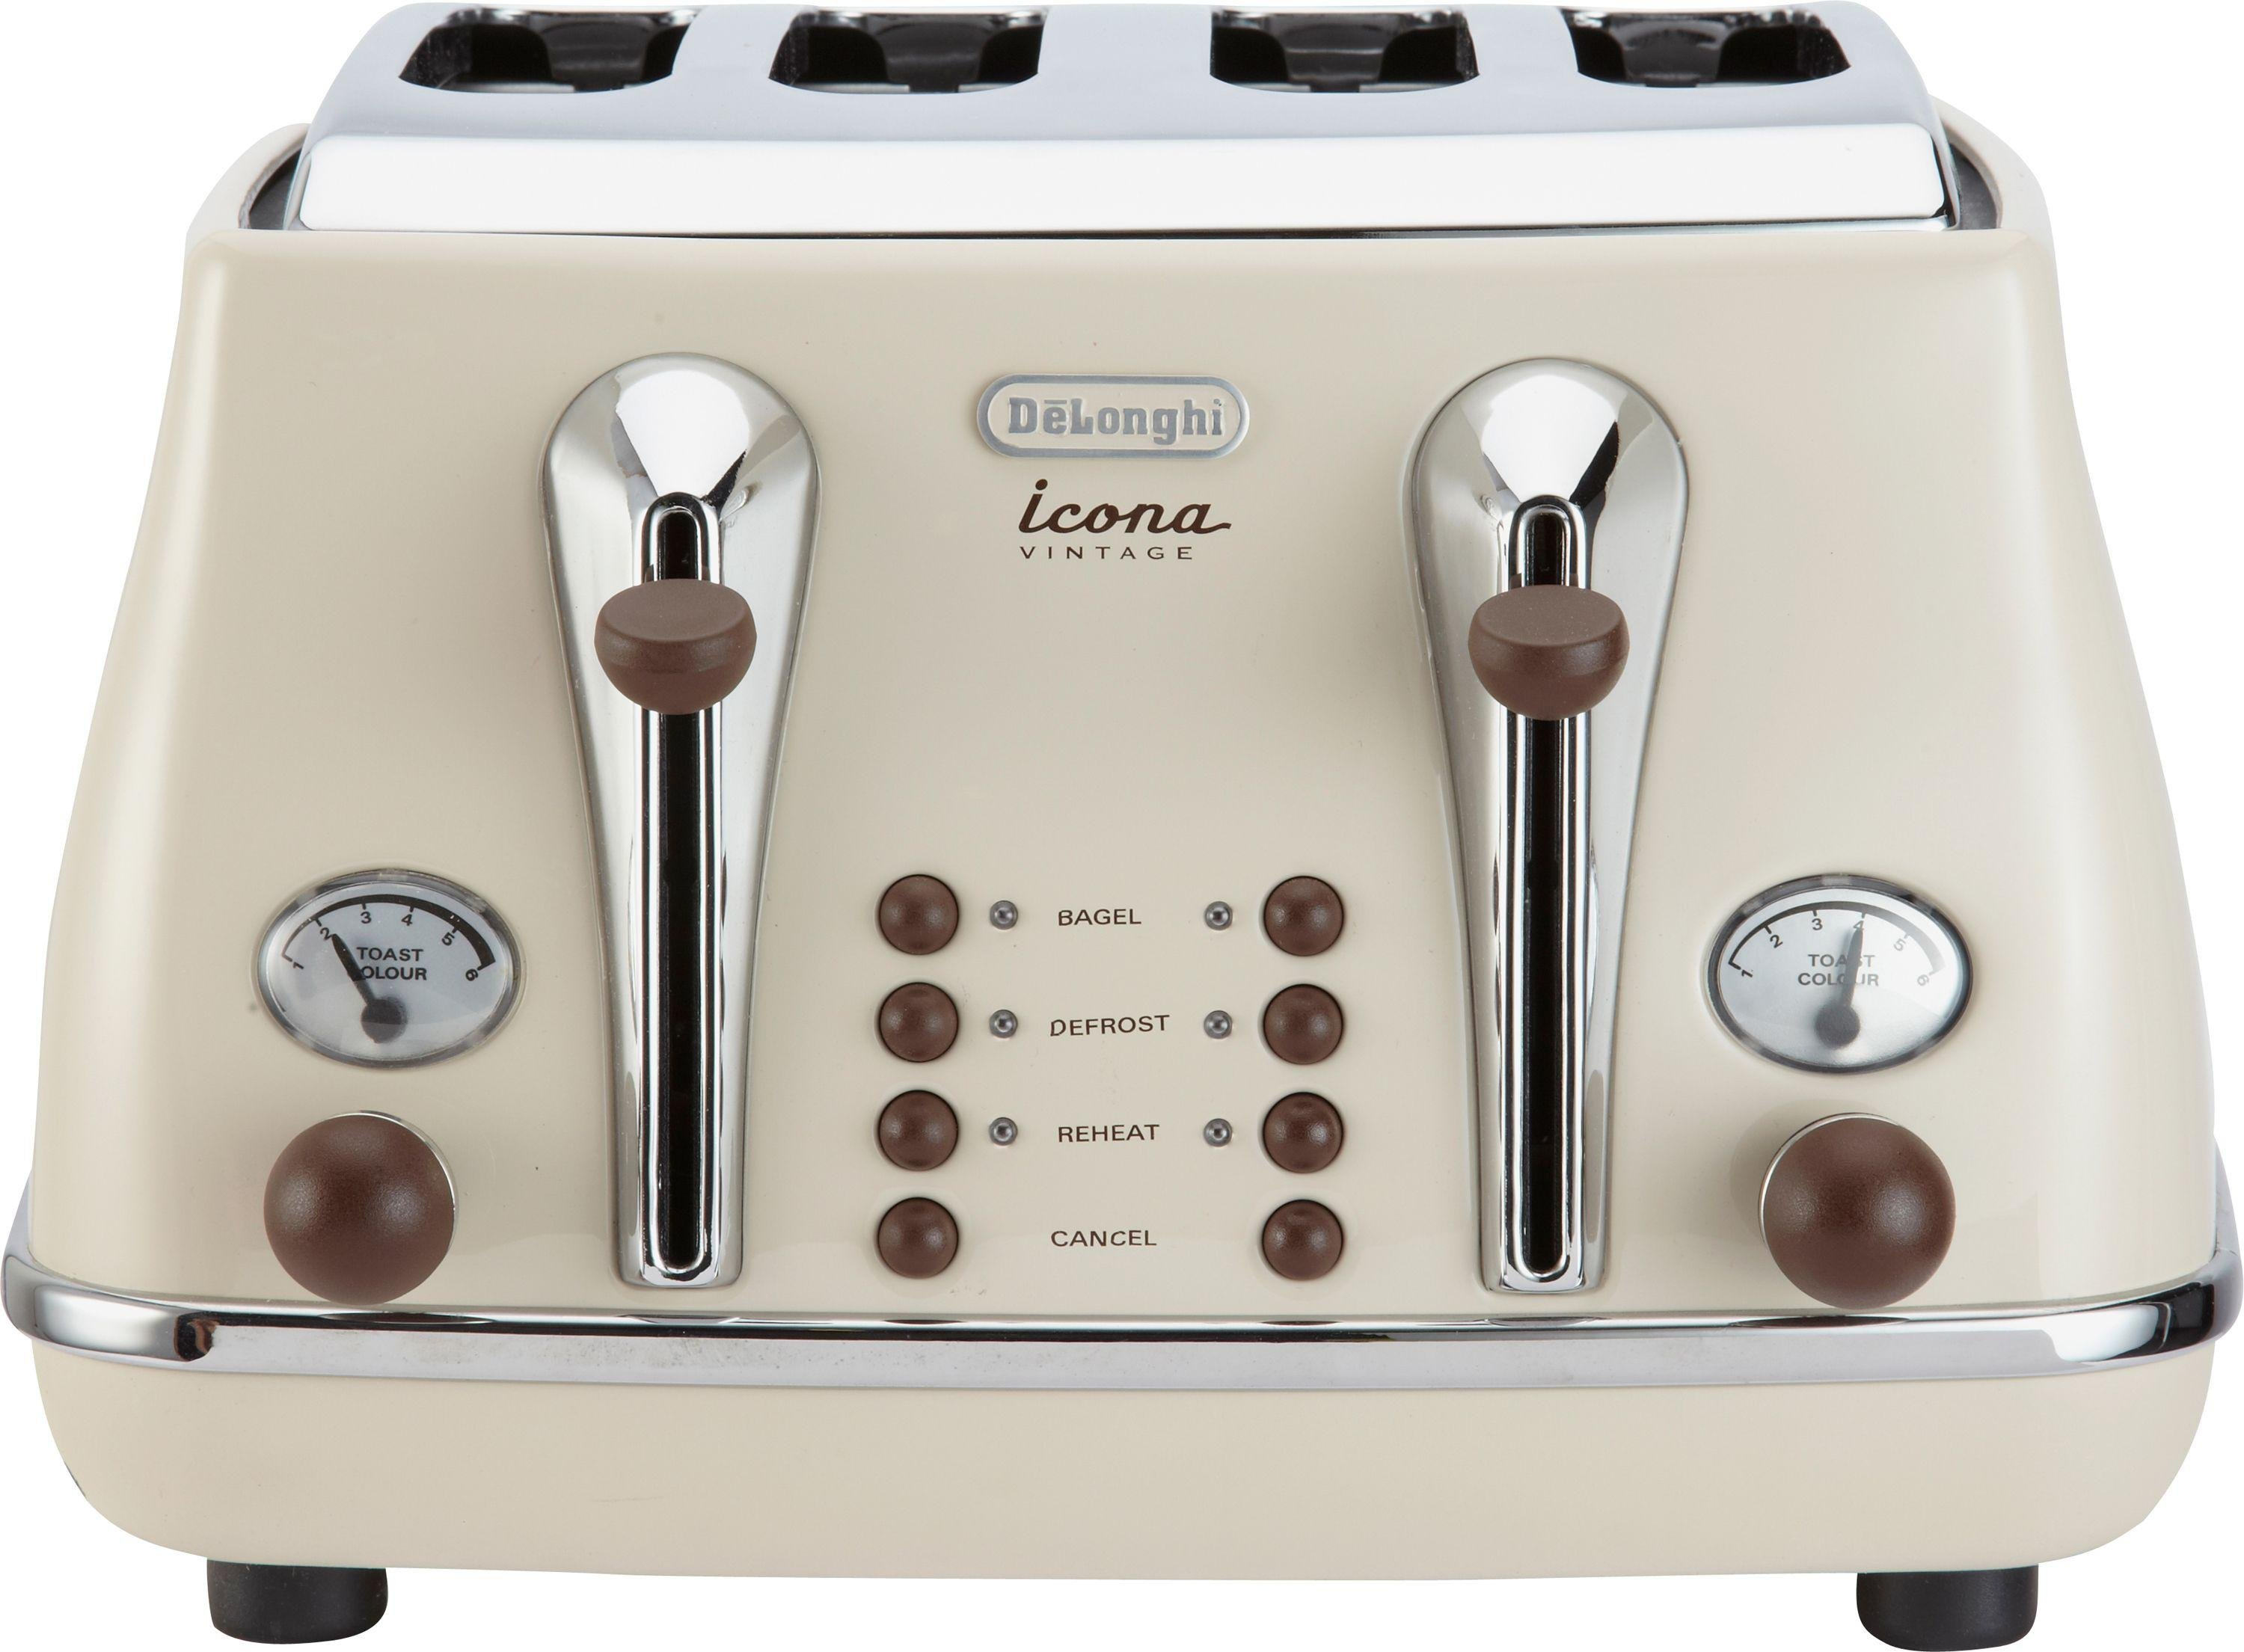 Image of De'Longhi - Toaster - 4 Slice Vintage Icona Toaster - -Cream